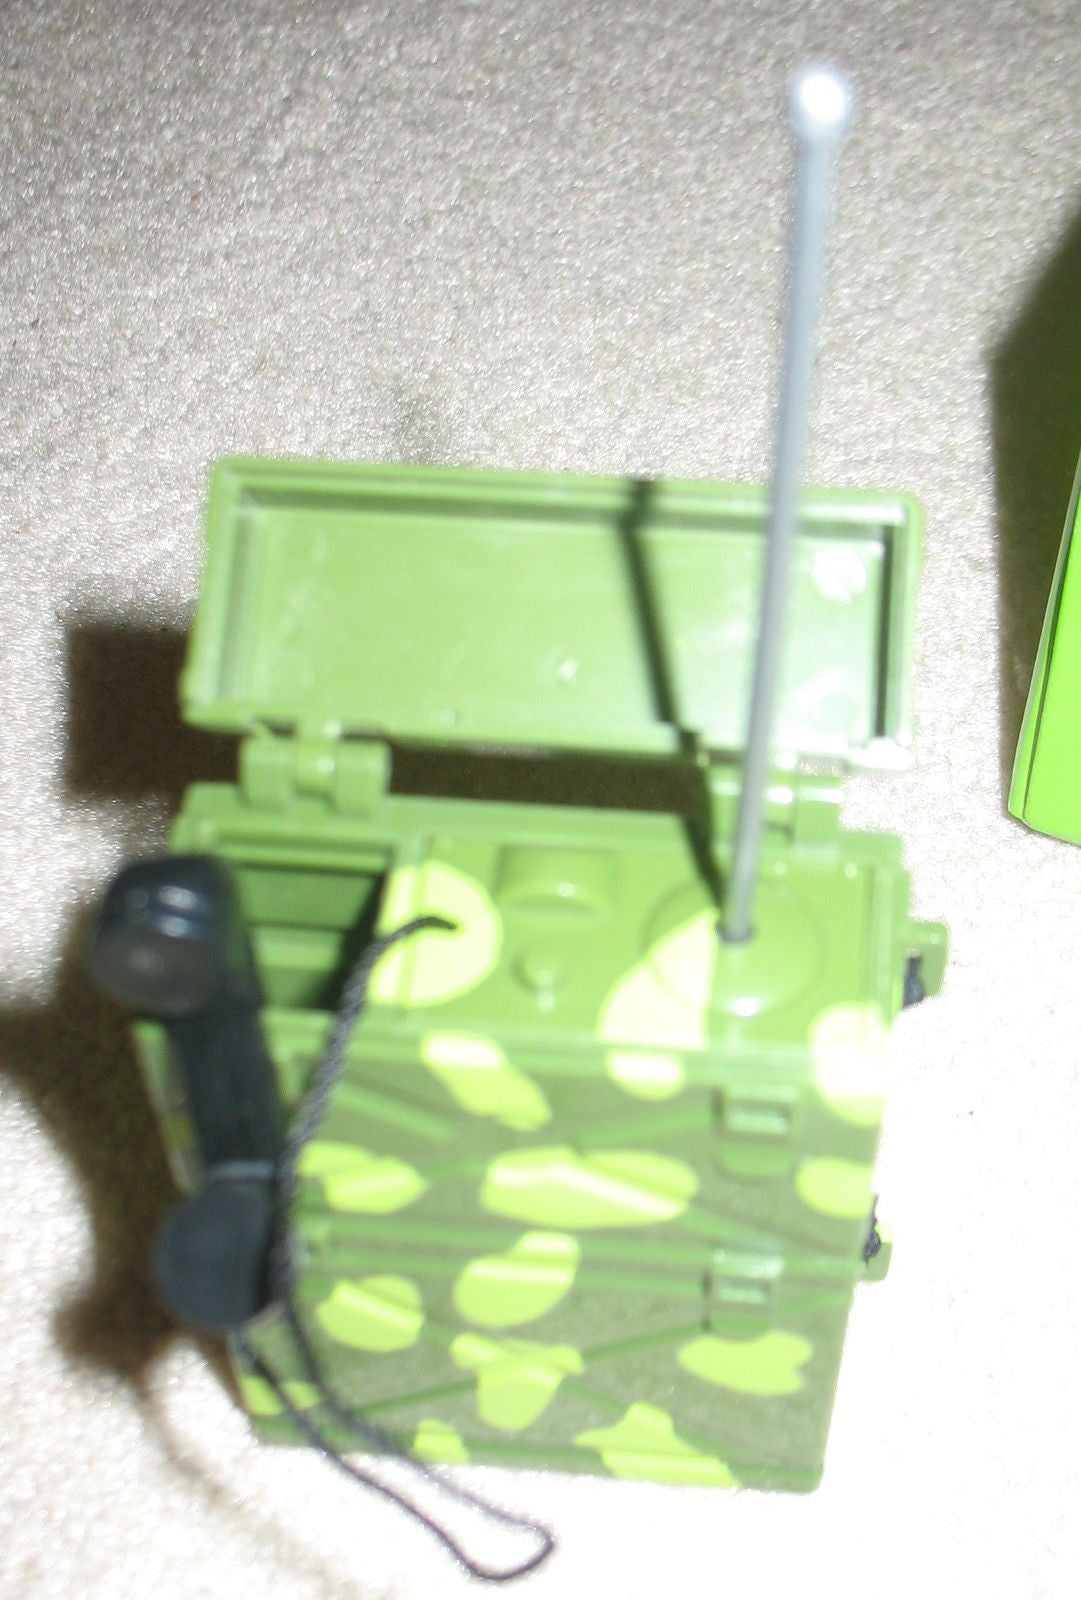 A095 GI JOE Hasbro Reissued Marine Camoflauged Backpack Radio.